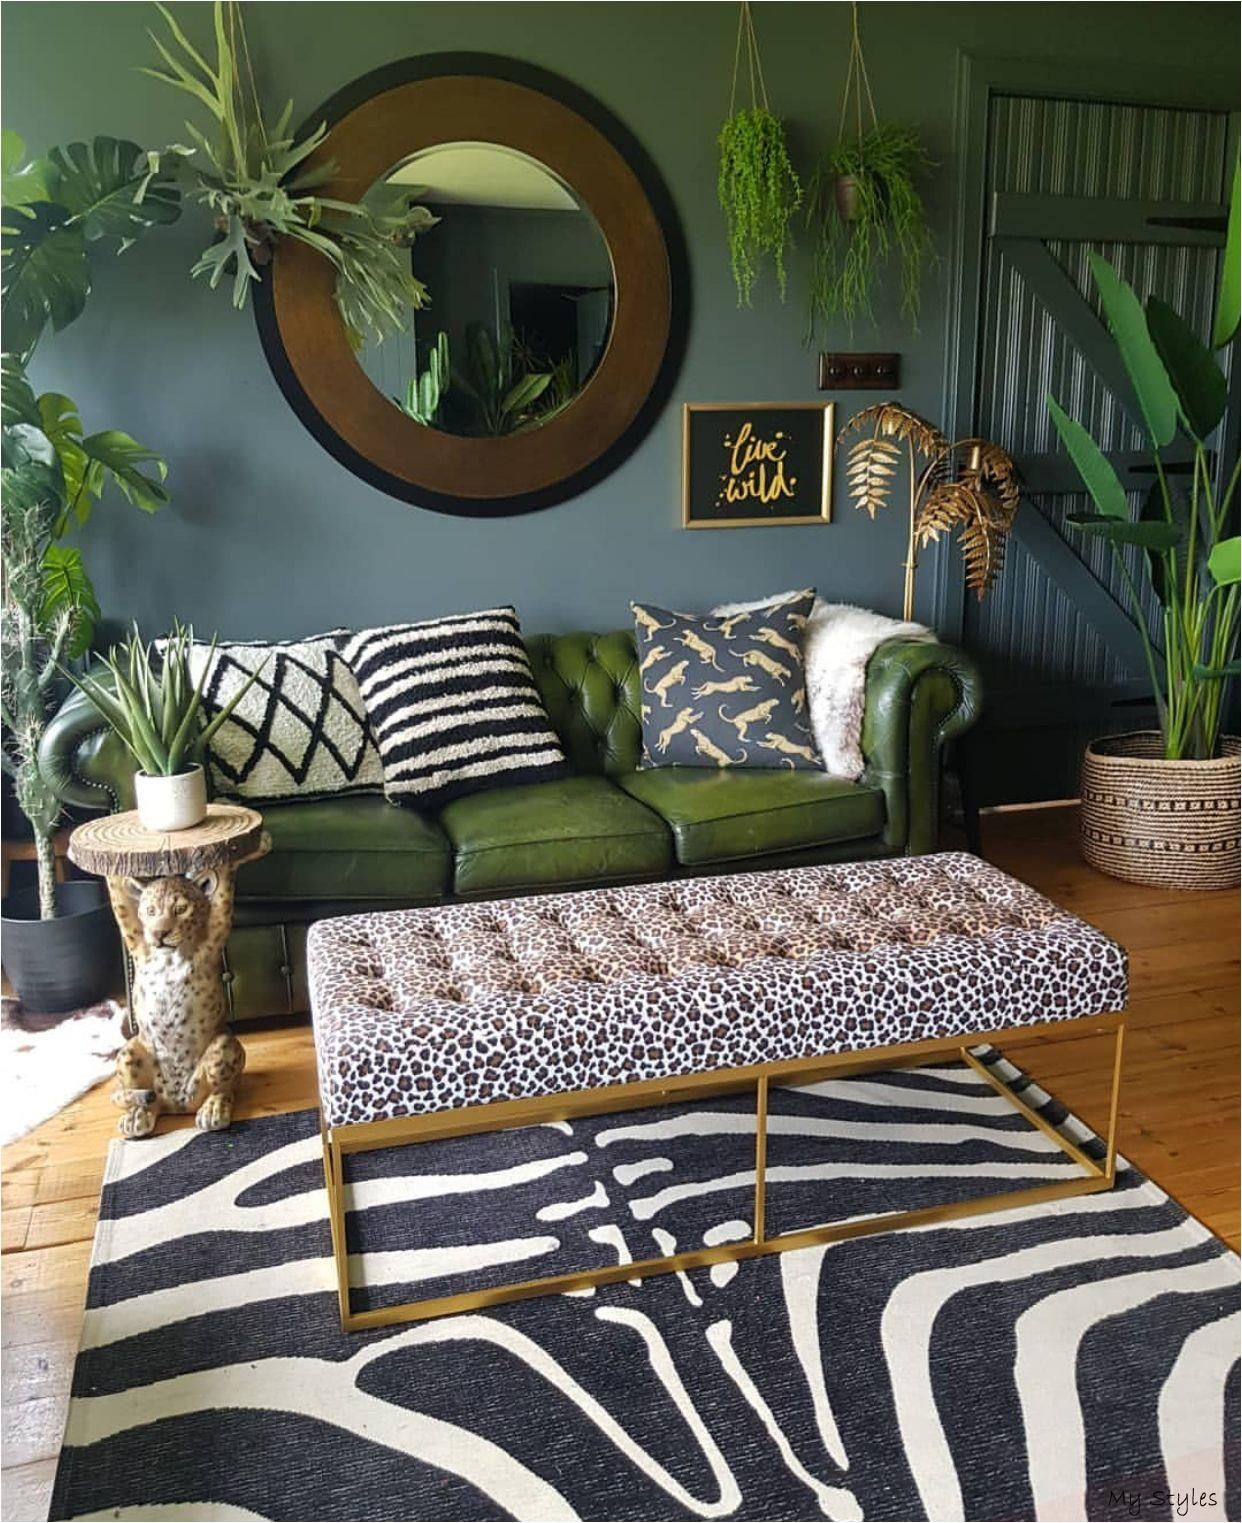 Oct 22 2019 A Story Of Home Blog This Week We Are Off To The Highlands Of Scotland For A Interior Design Living Room Boho Living Room Living Room Designs Living room ideas zebra